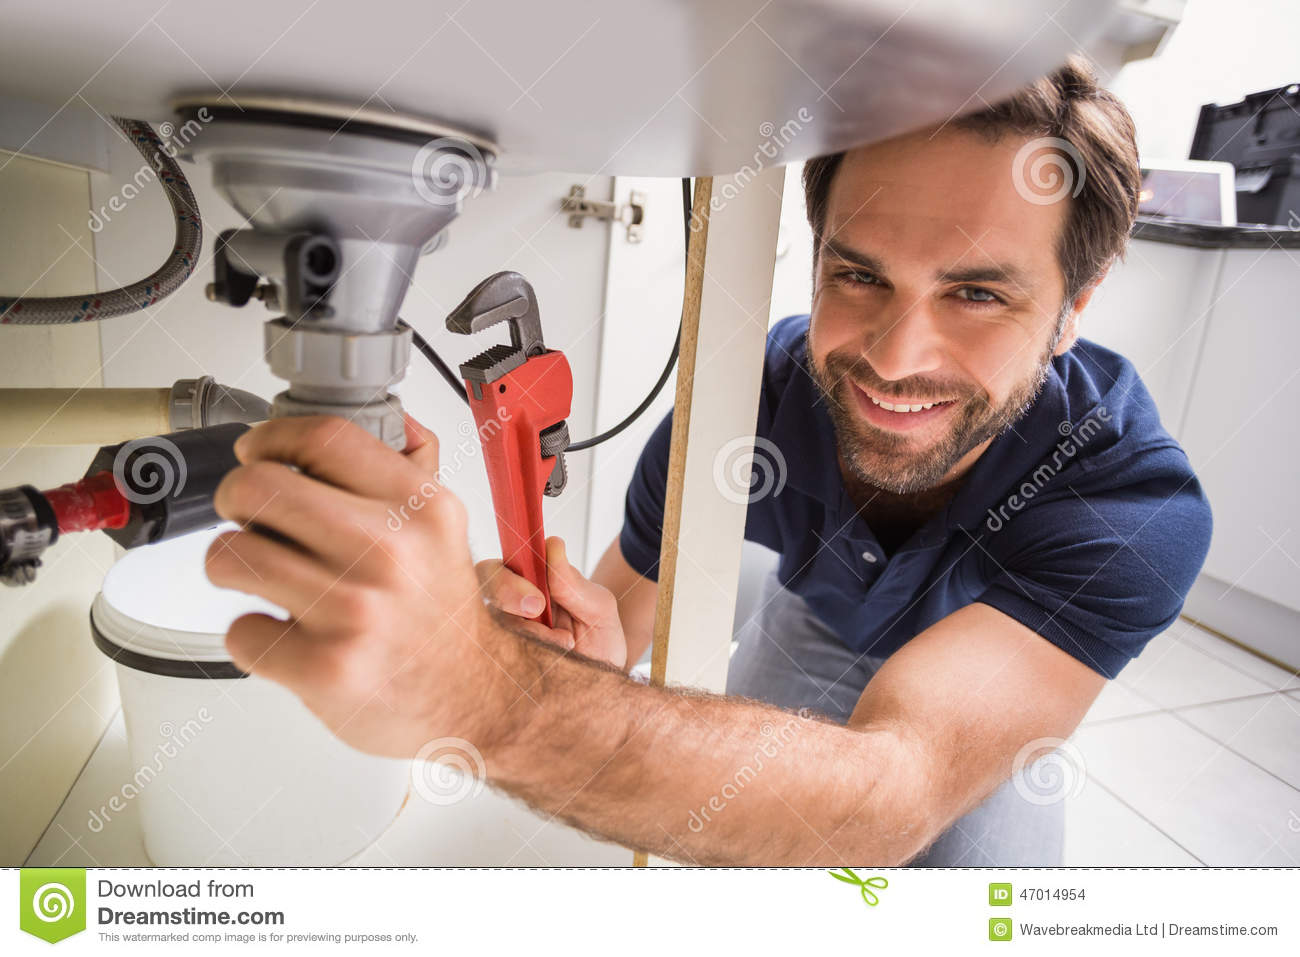 plumber-fixing-under-sink-kitchen-47014954.jpg